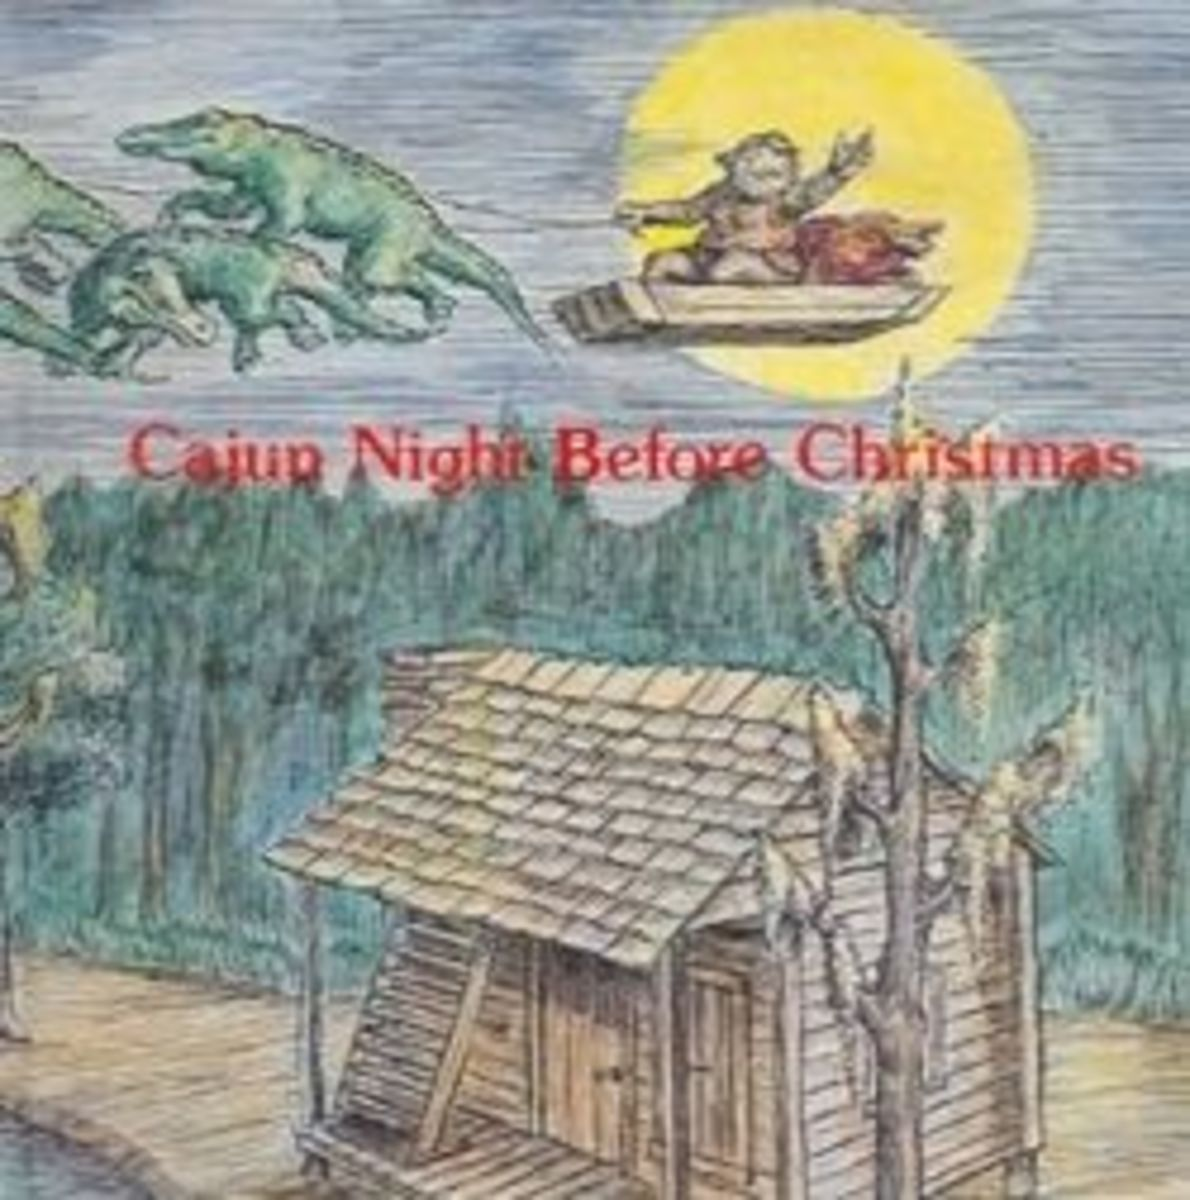 Cajun Night Before Christmas | HubPages